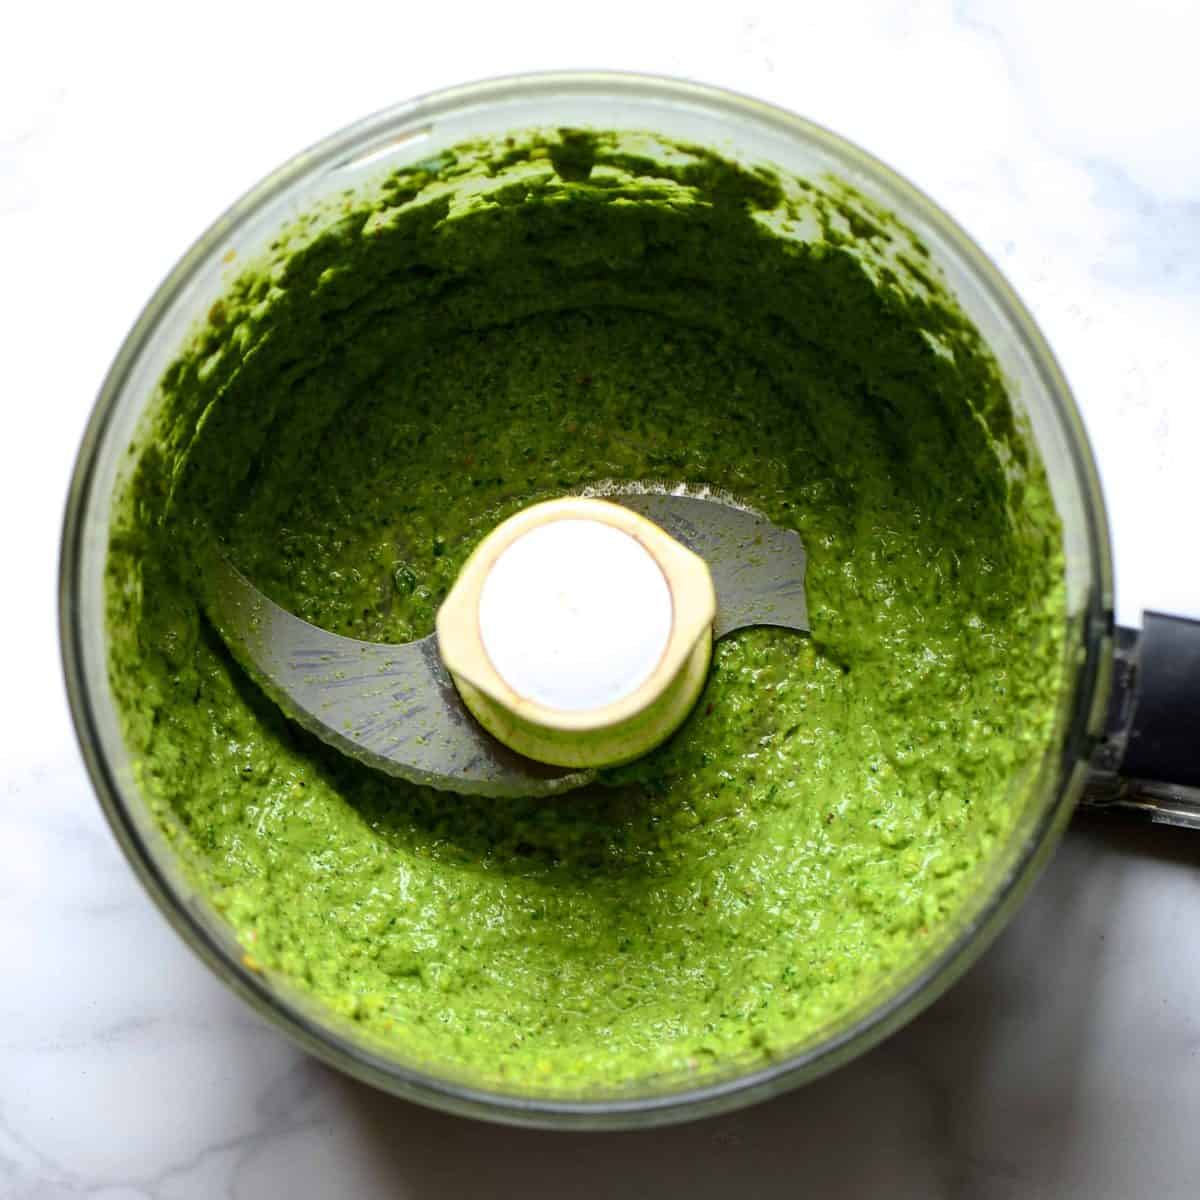 Green sauce in a blender